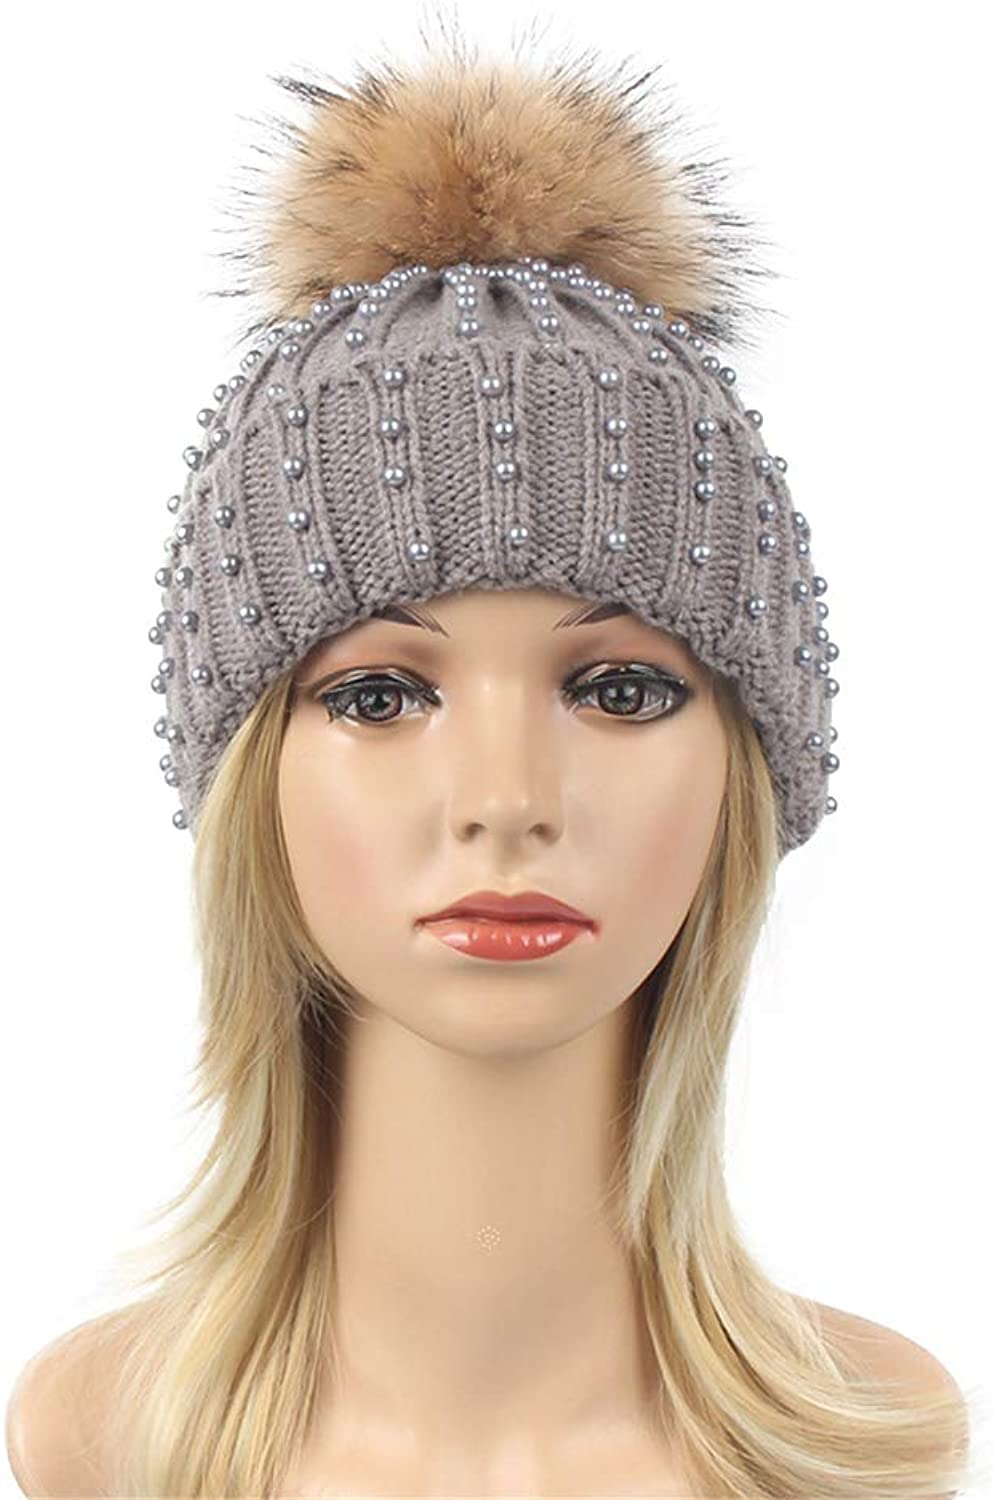 Winter Knit hat Women's Pearl Thickening Solid color Outdoor Warm with Ball Knit Hat Winter Beanie hat (color   Brown)